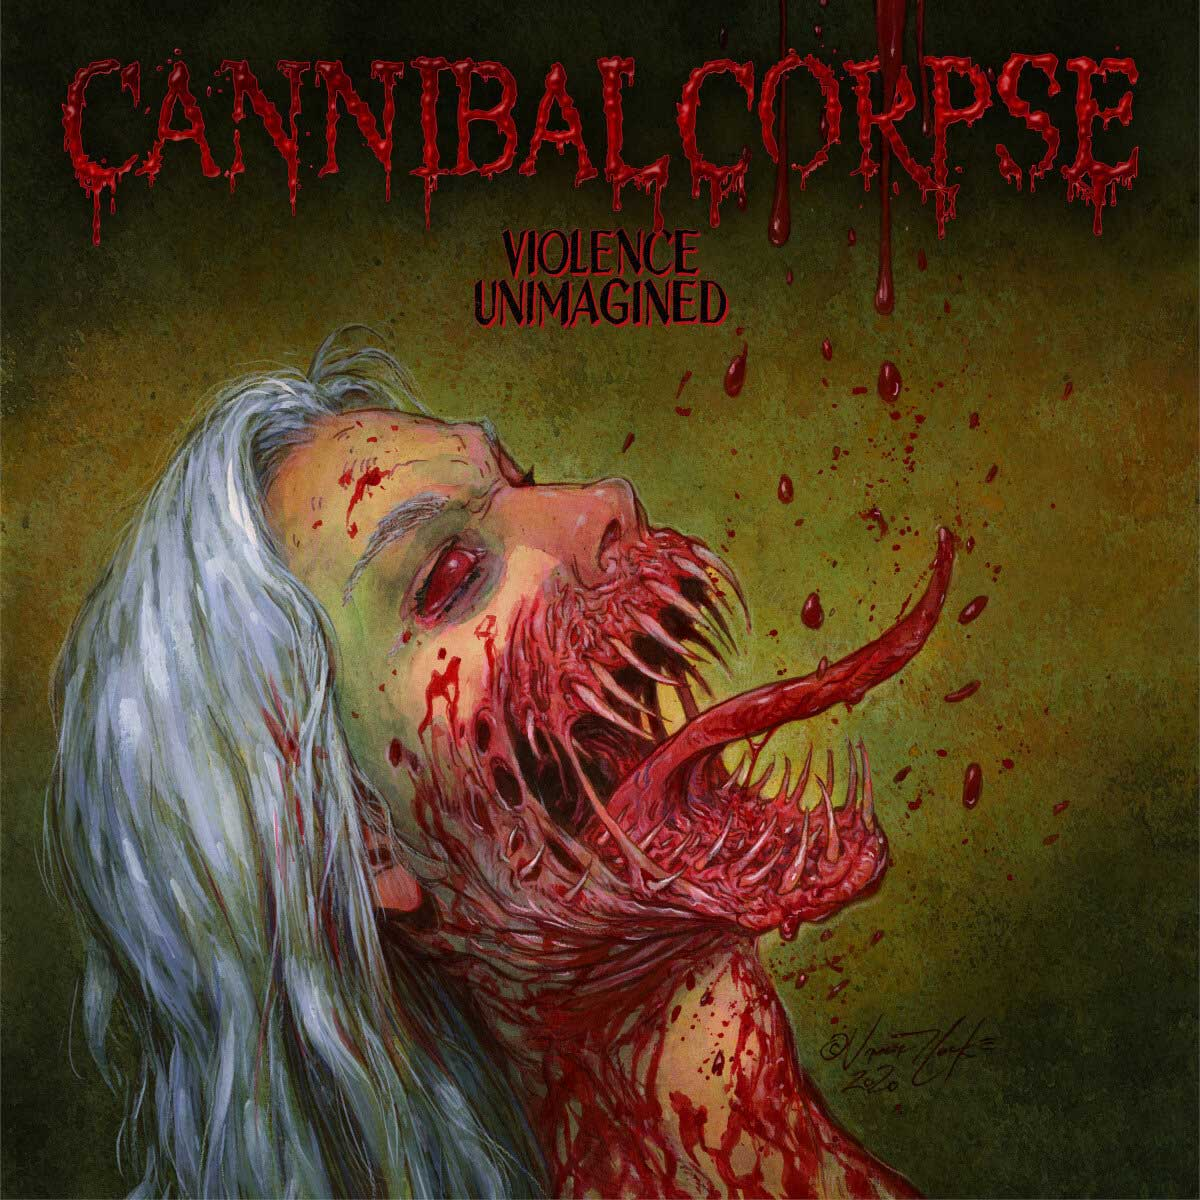 Cover of the album Violence Unimagined, from Cannibal Corpse